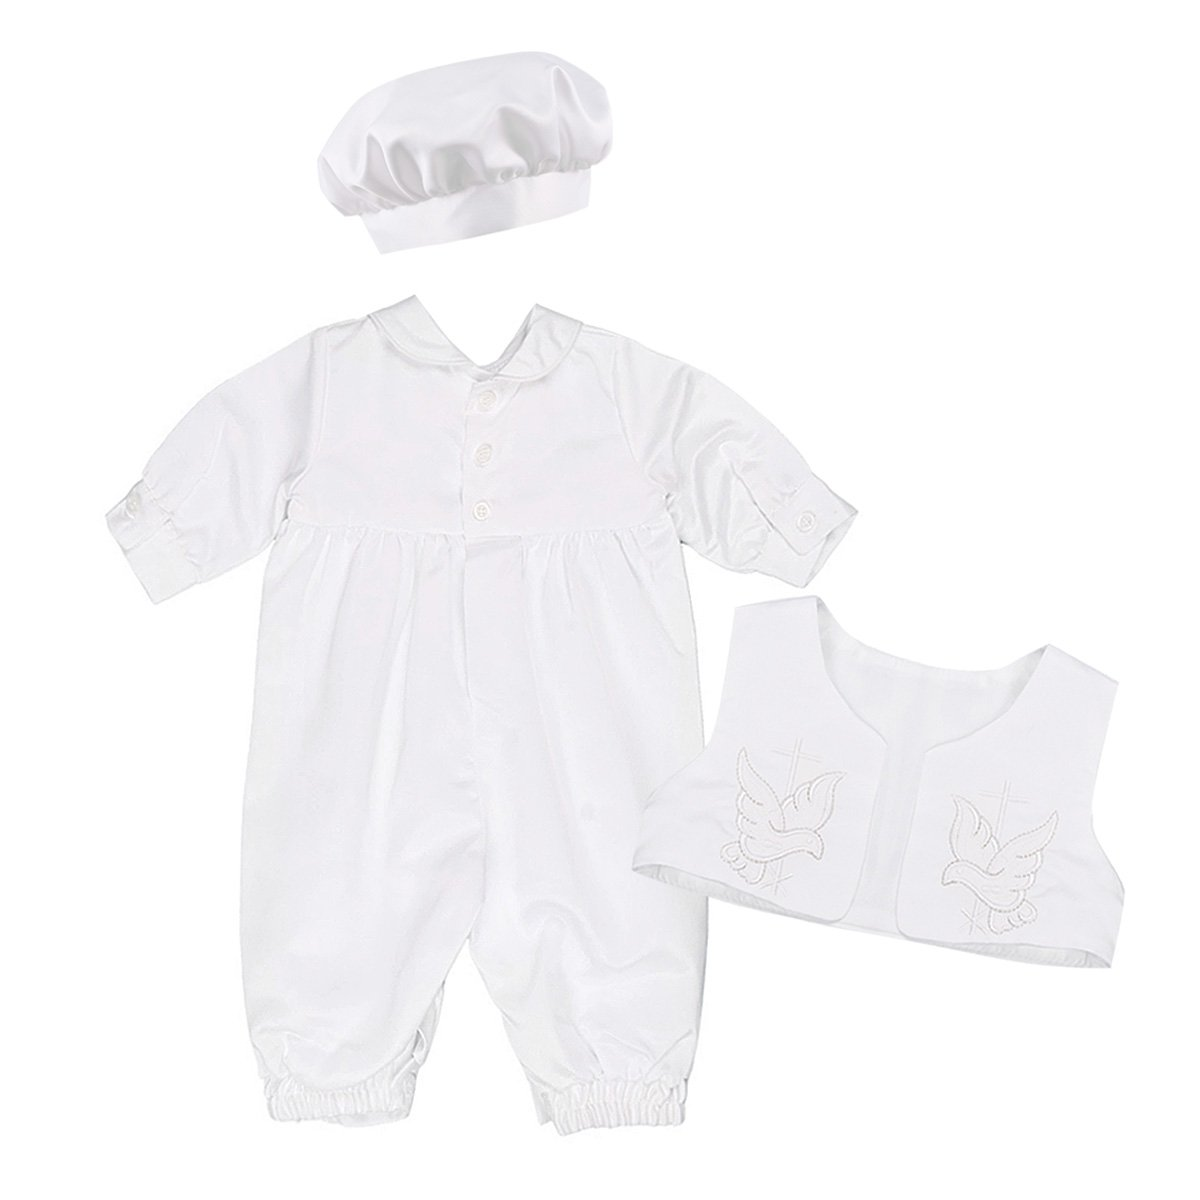 MSemis Infant Baby Boys Girls Baptism Christening Clothes Longall Embroidered Satin Romper with Waistcoat Bonnet Hat Set